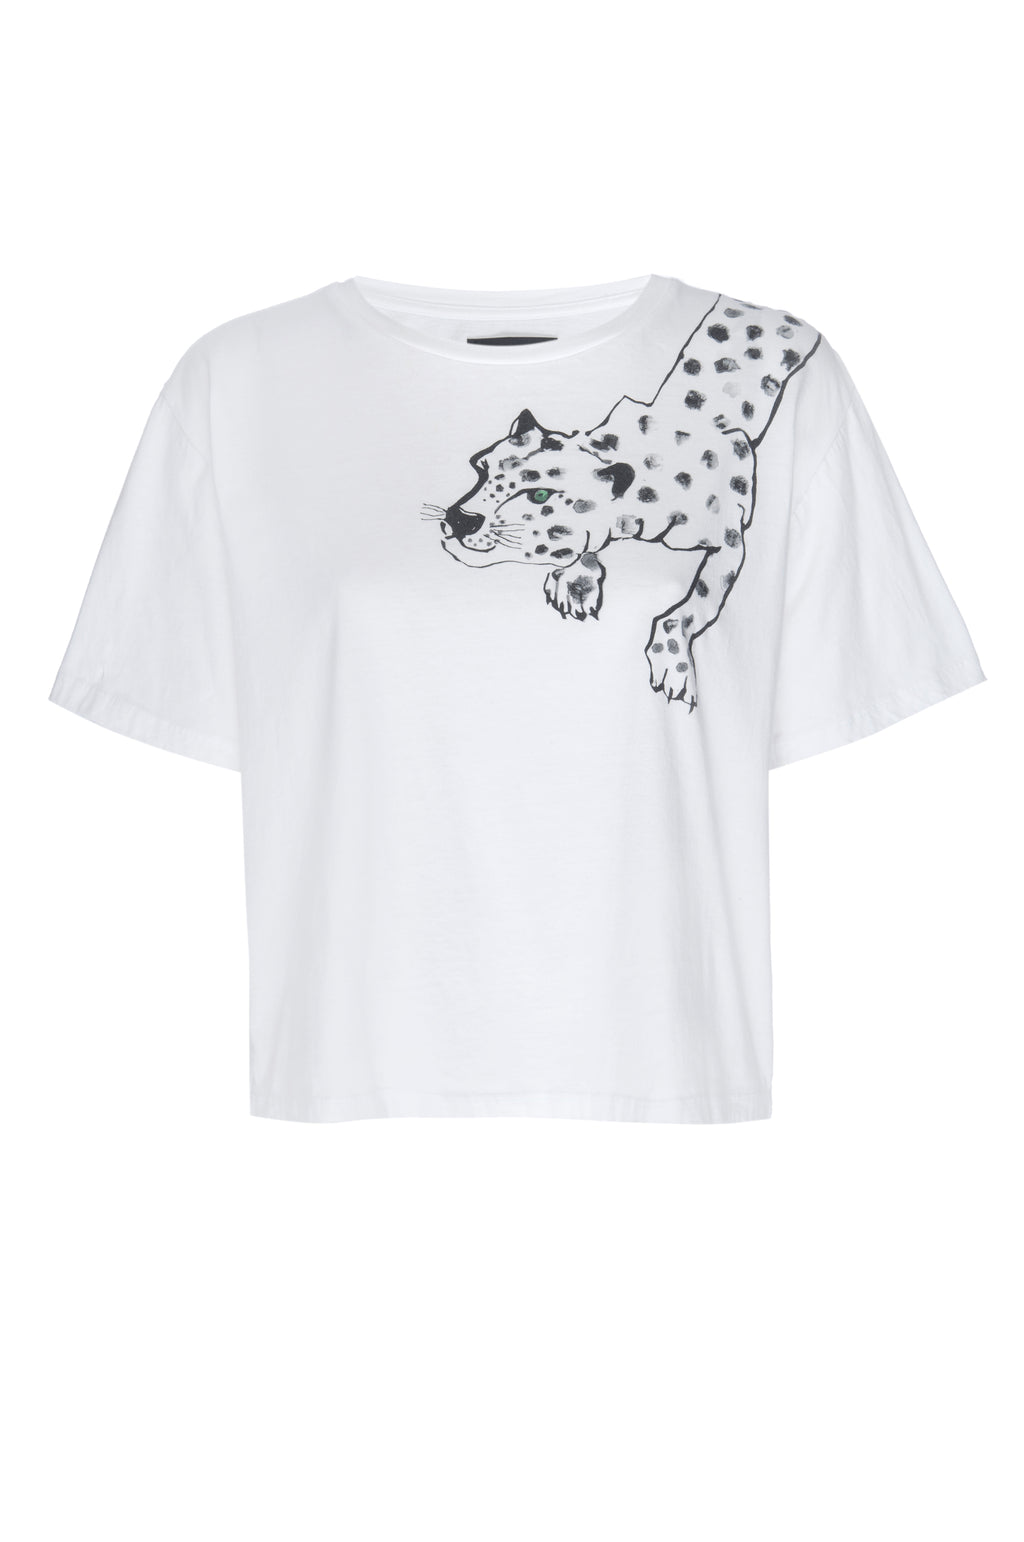 Painted Lil' Cheetah Tee